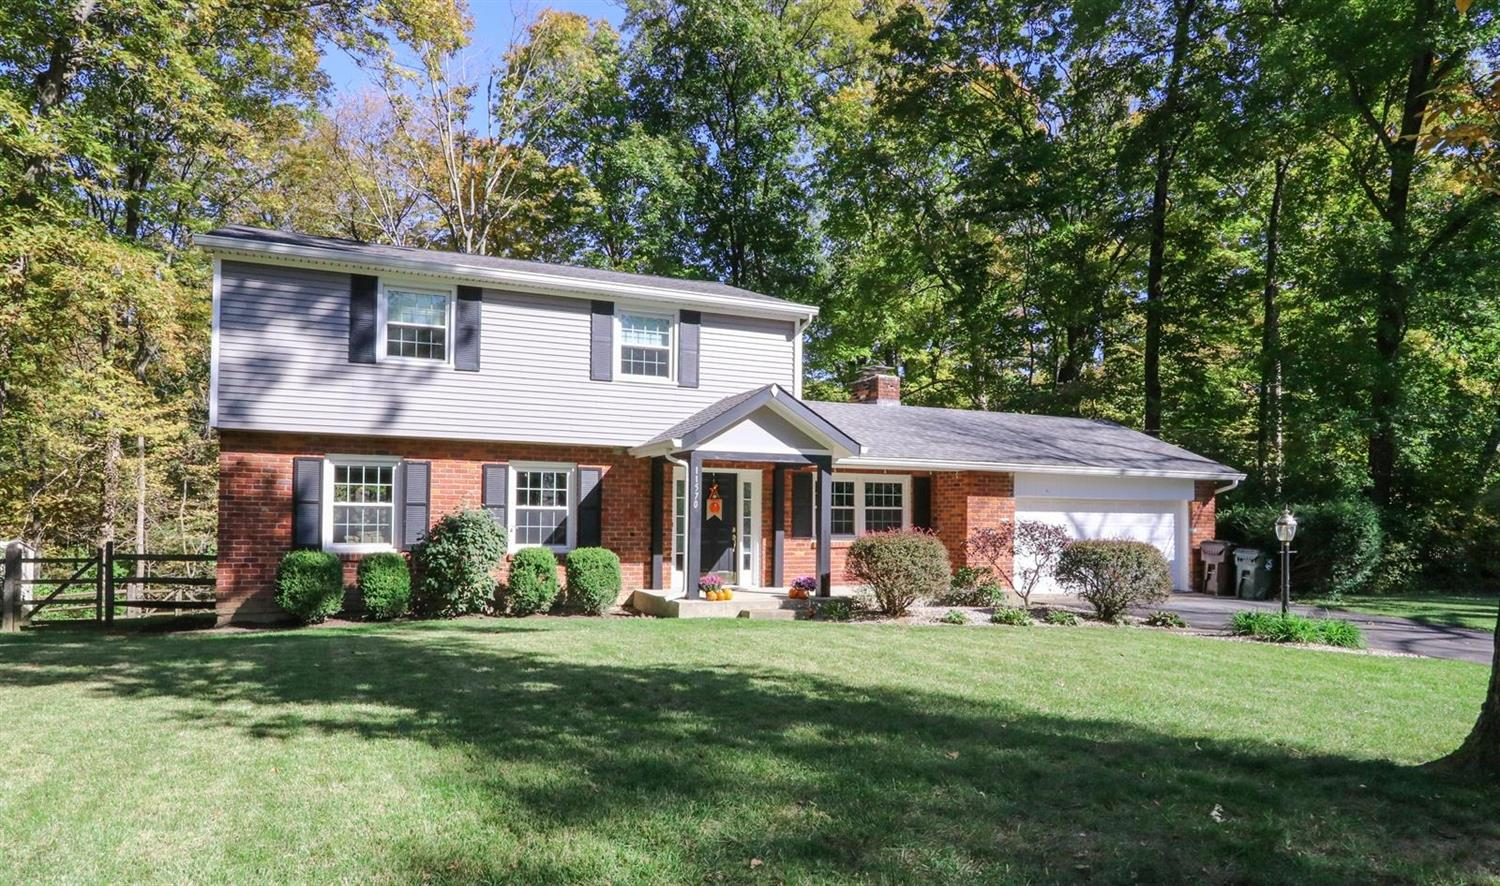 Property for sale at 11570 Plumhill Drive, Symmes Twp,  OH 45249